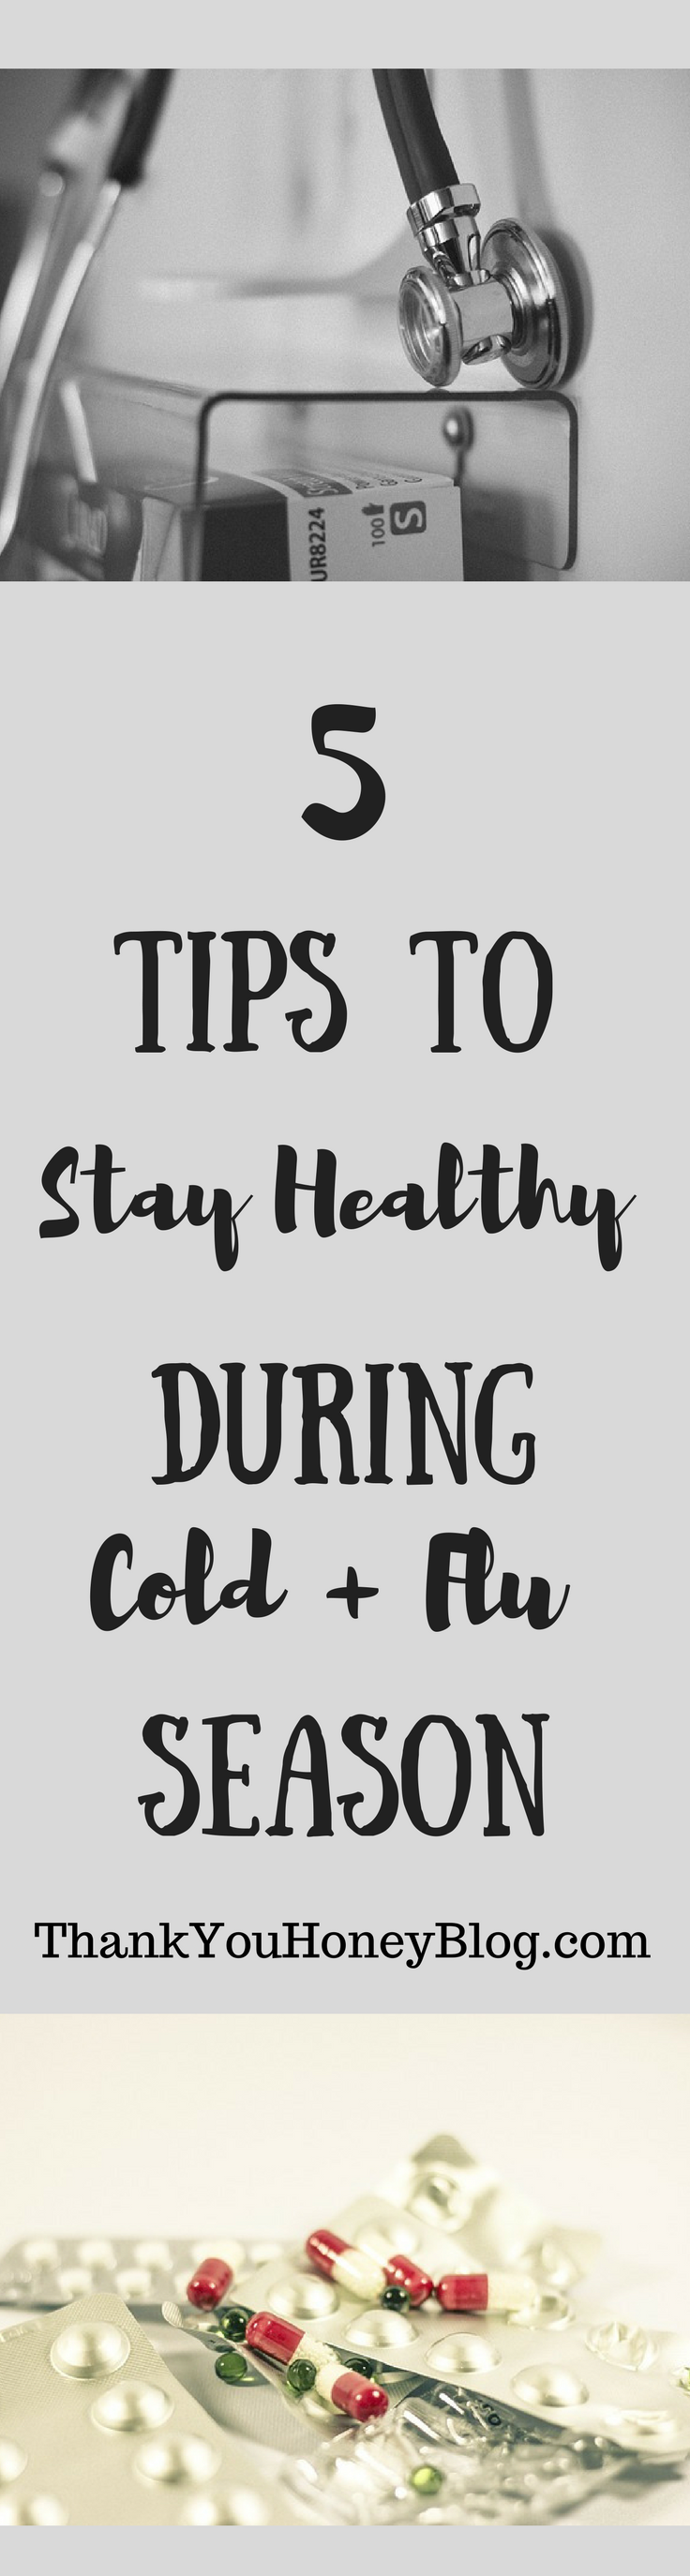 5 Tips to Stay Healthy During Cold + Flu Season